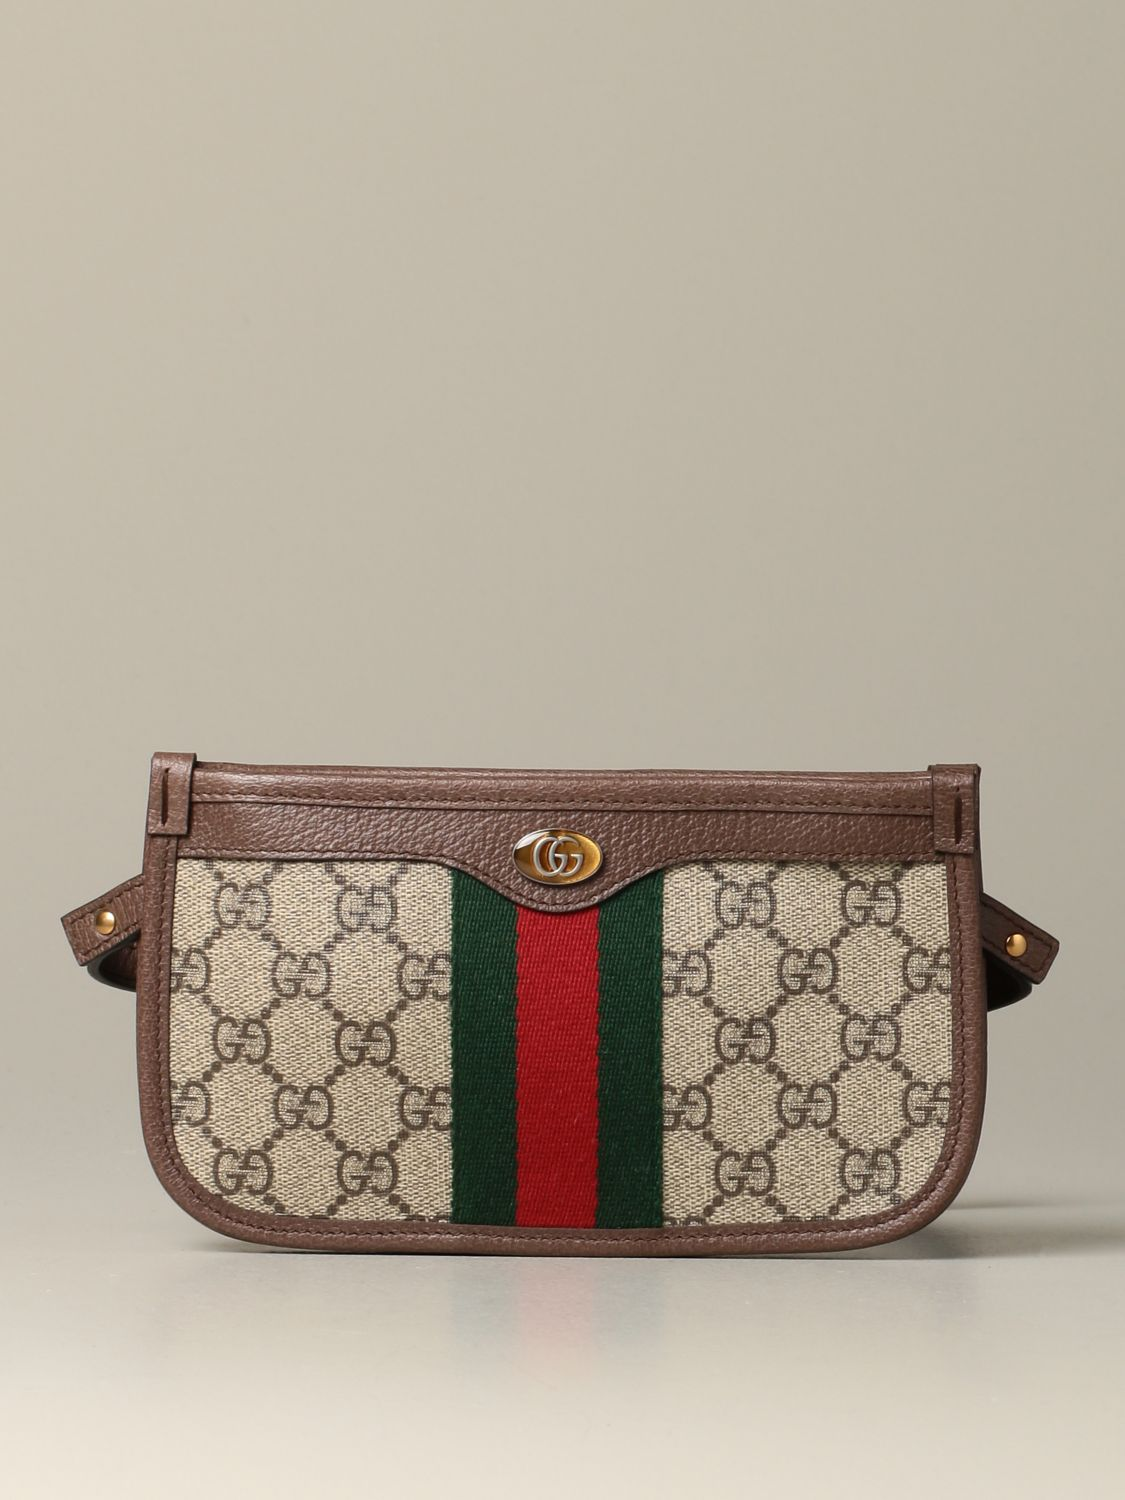 Belt bag Gucci: Ophidia Gucci GG Supreme shoulder bag beige 1